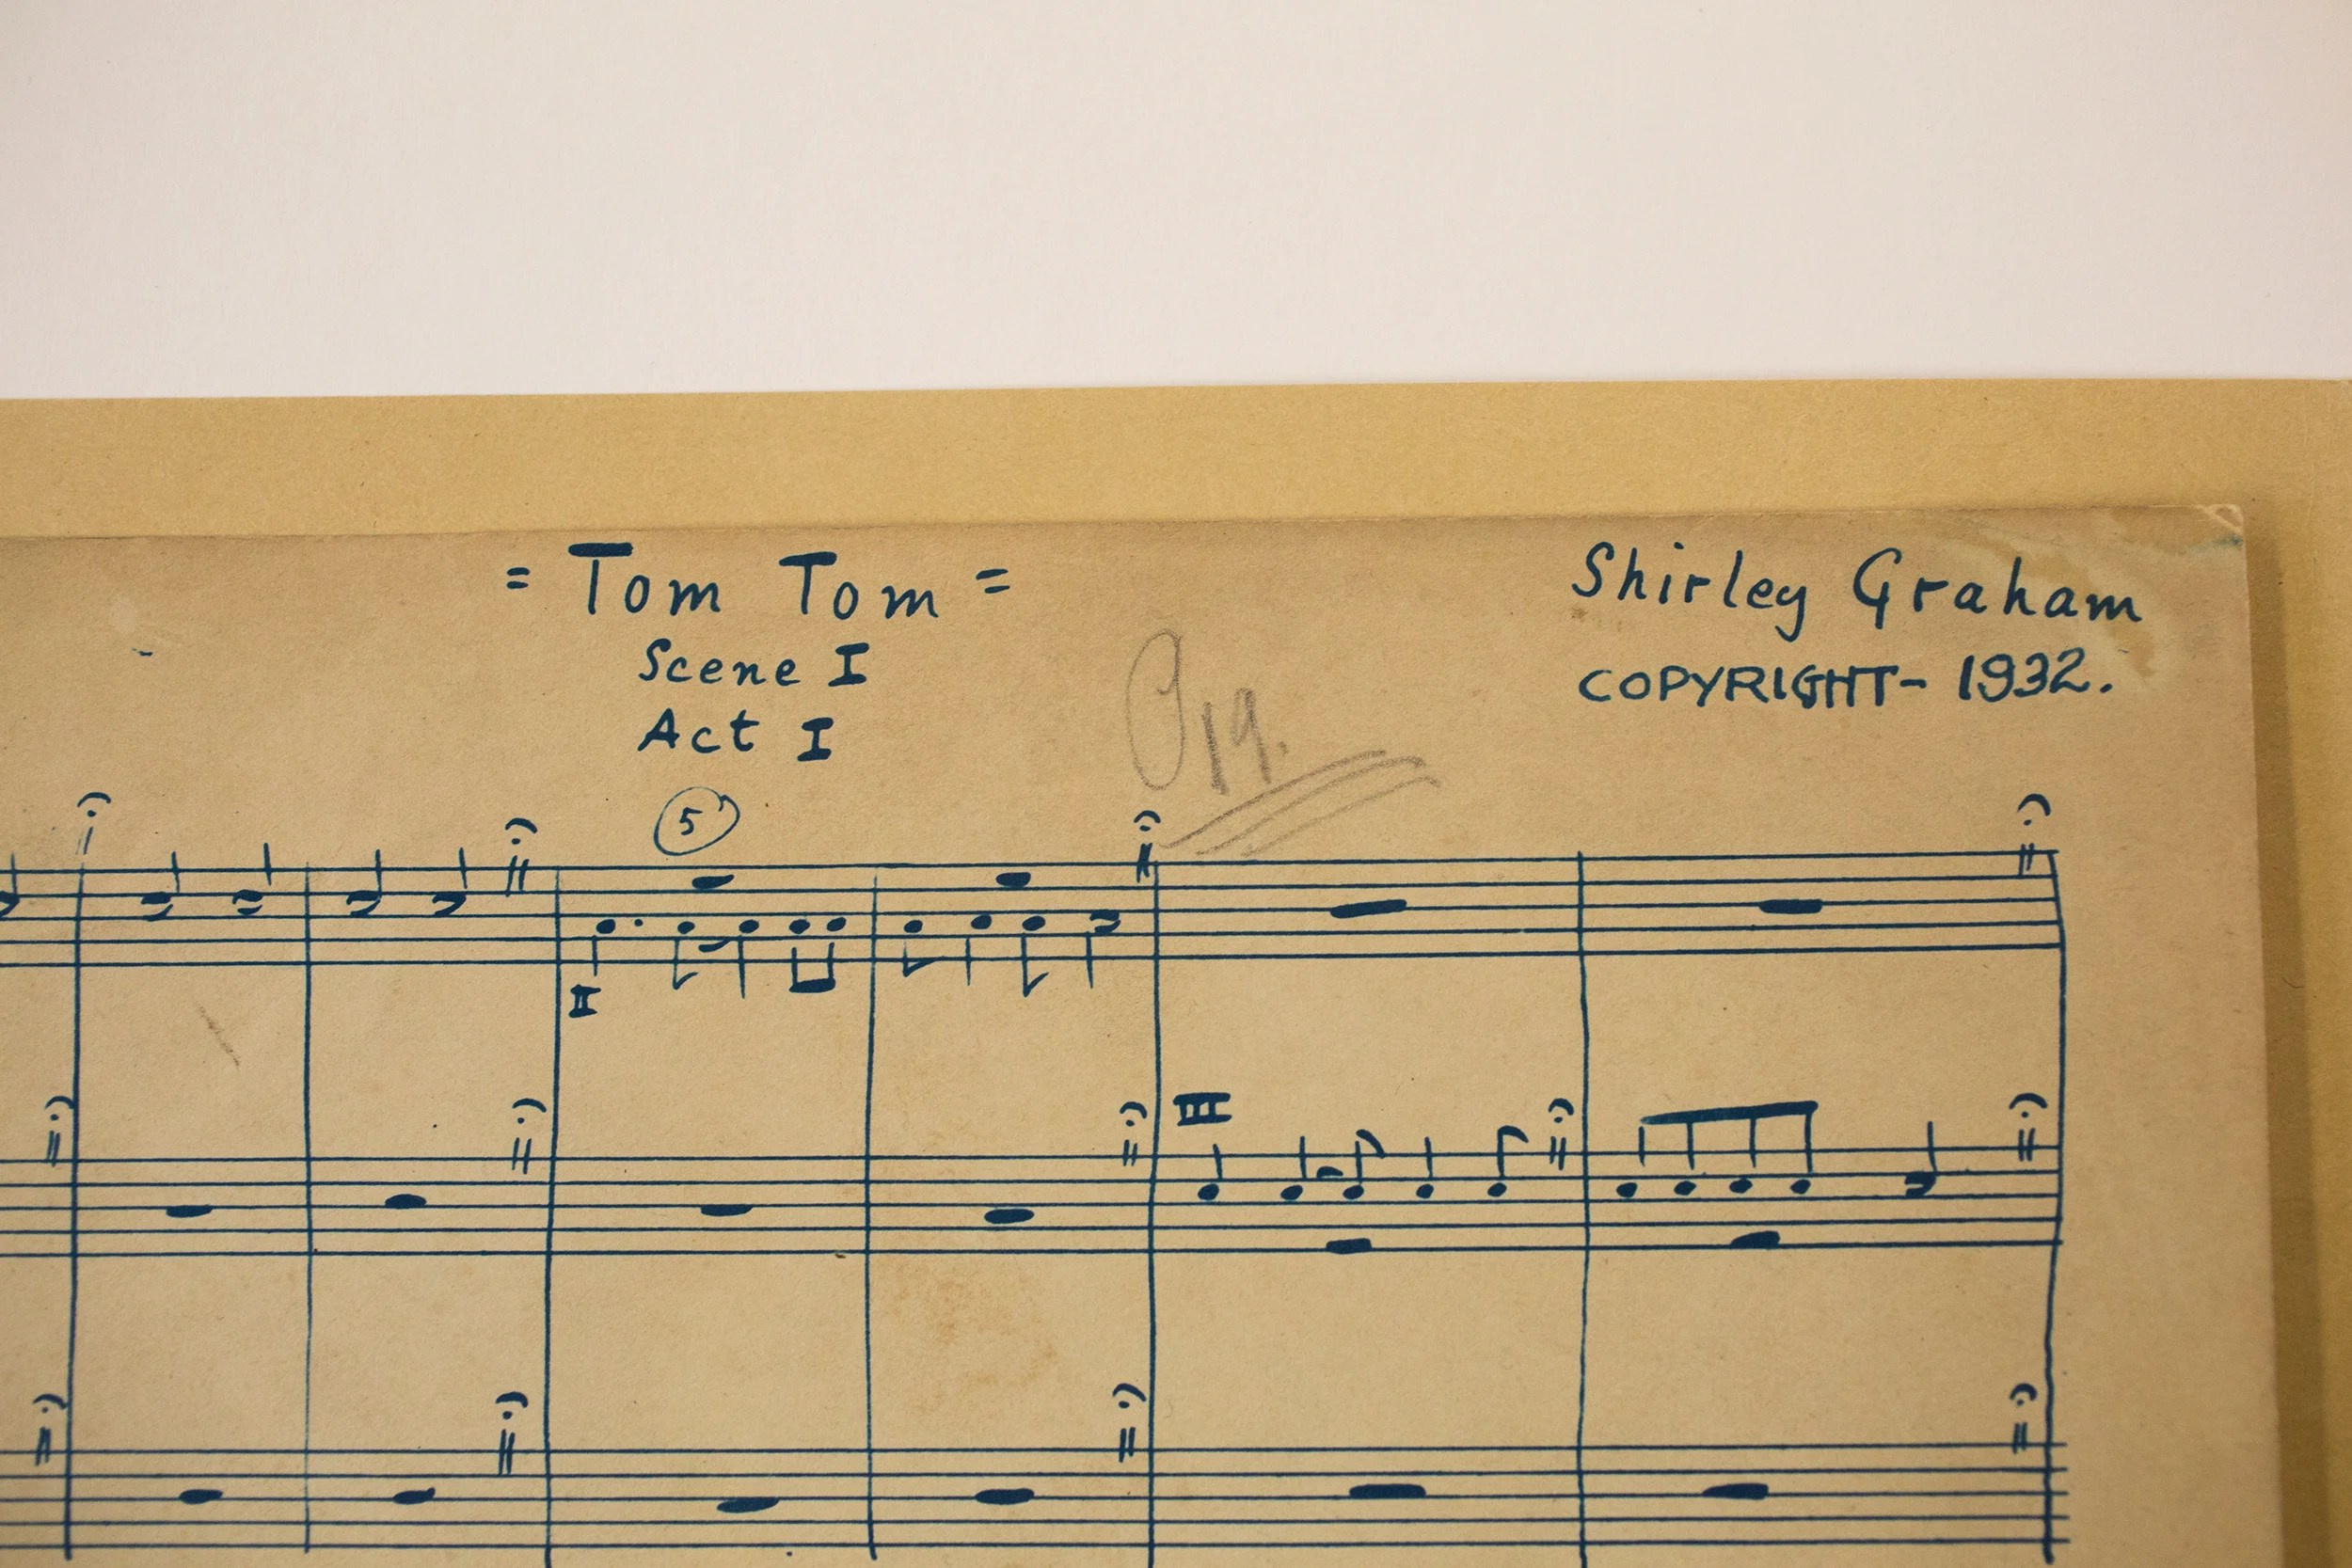 Among the finds at the Schlesinger Library was music composed by Graham and rediscovered by Lucy Caplan '12, who was seeking a topic for her College essay. Stephanie Mitchell/Harvard Staff Photographer